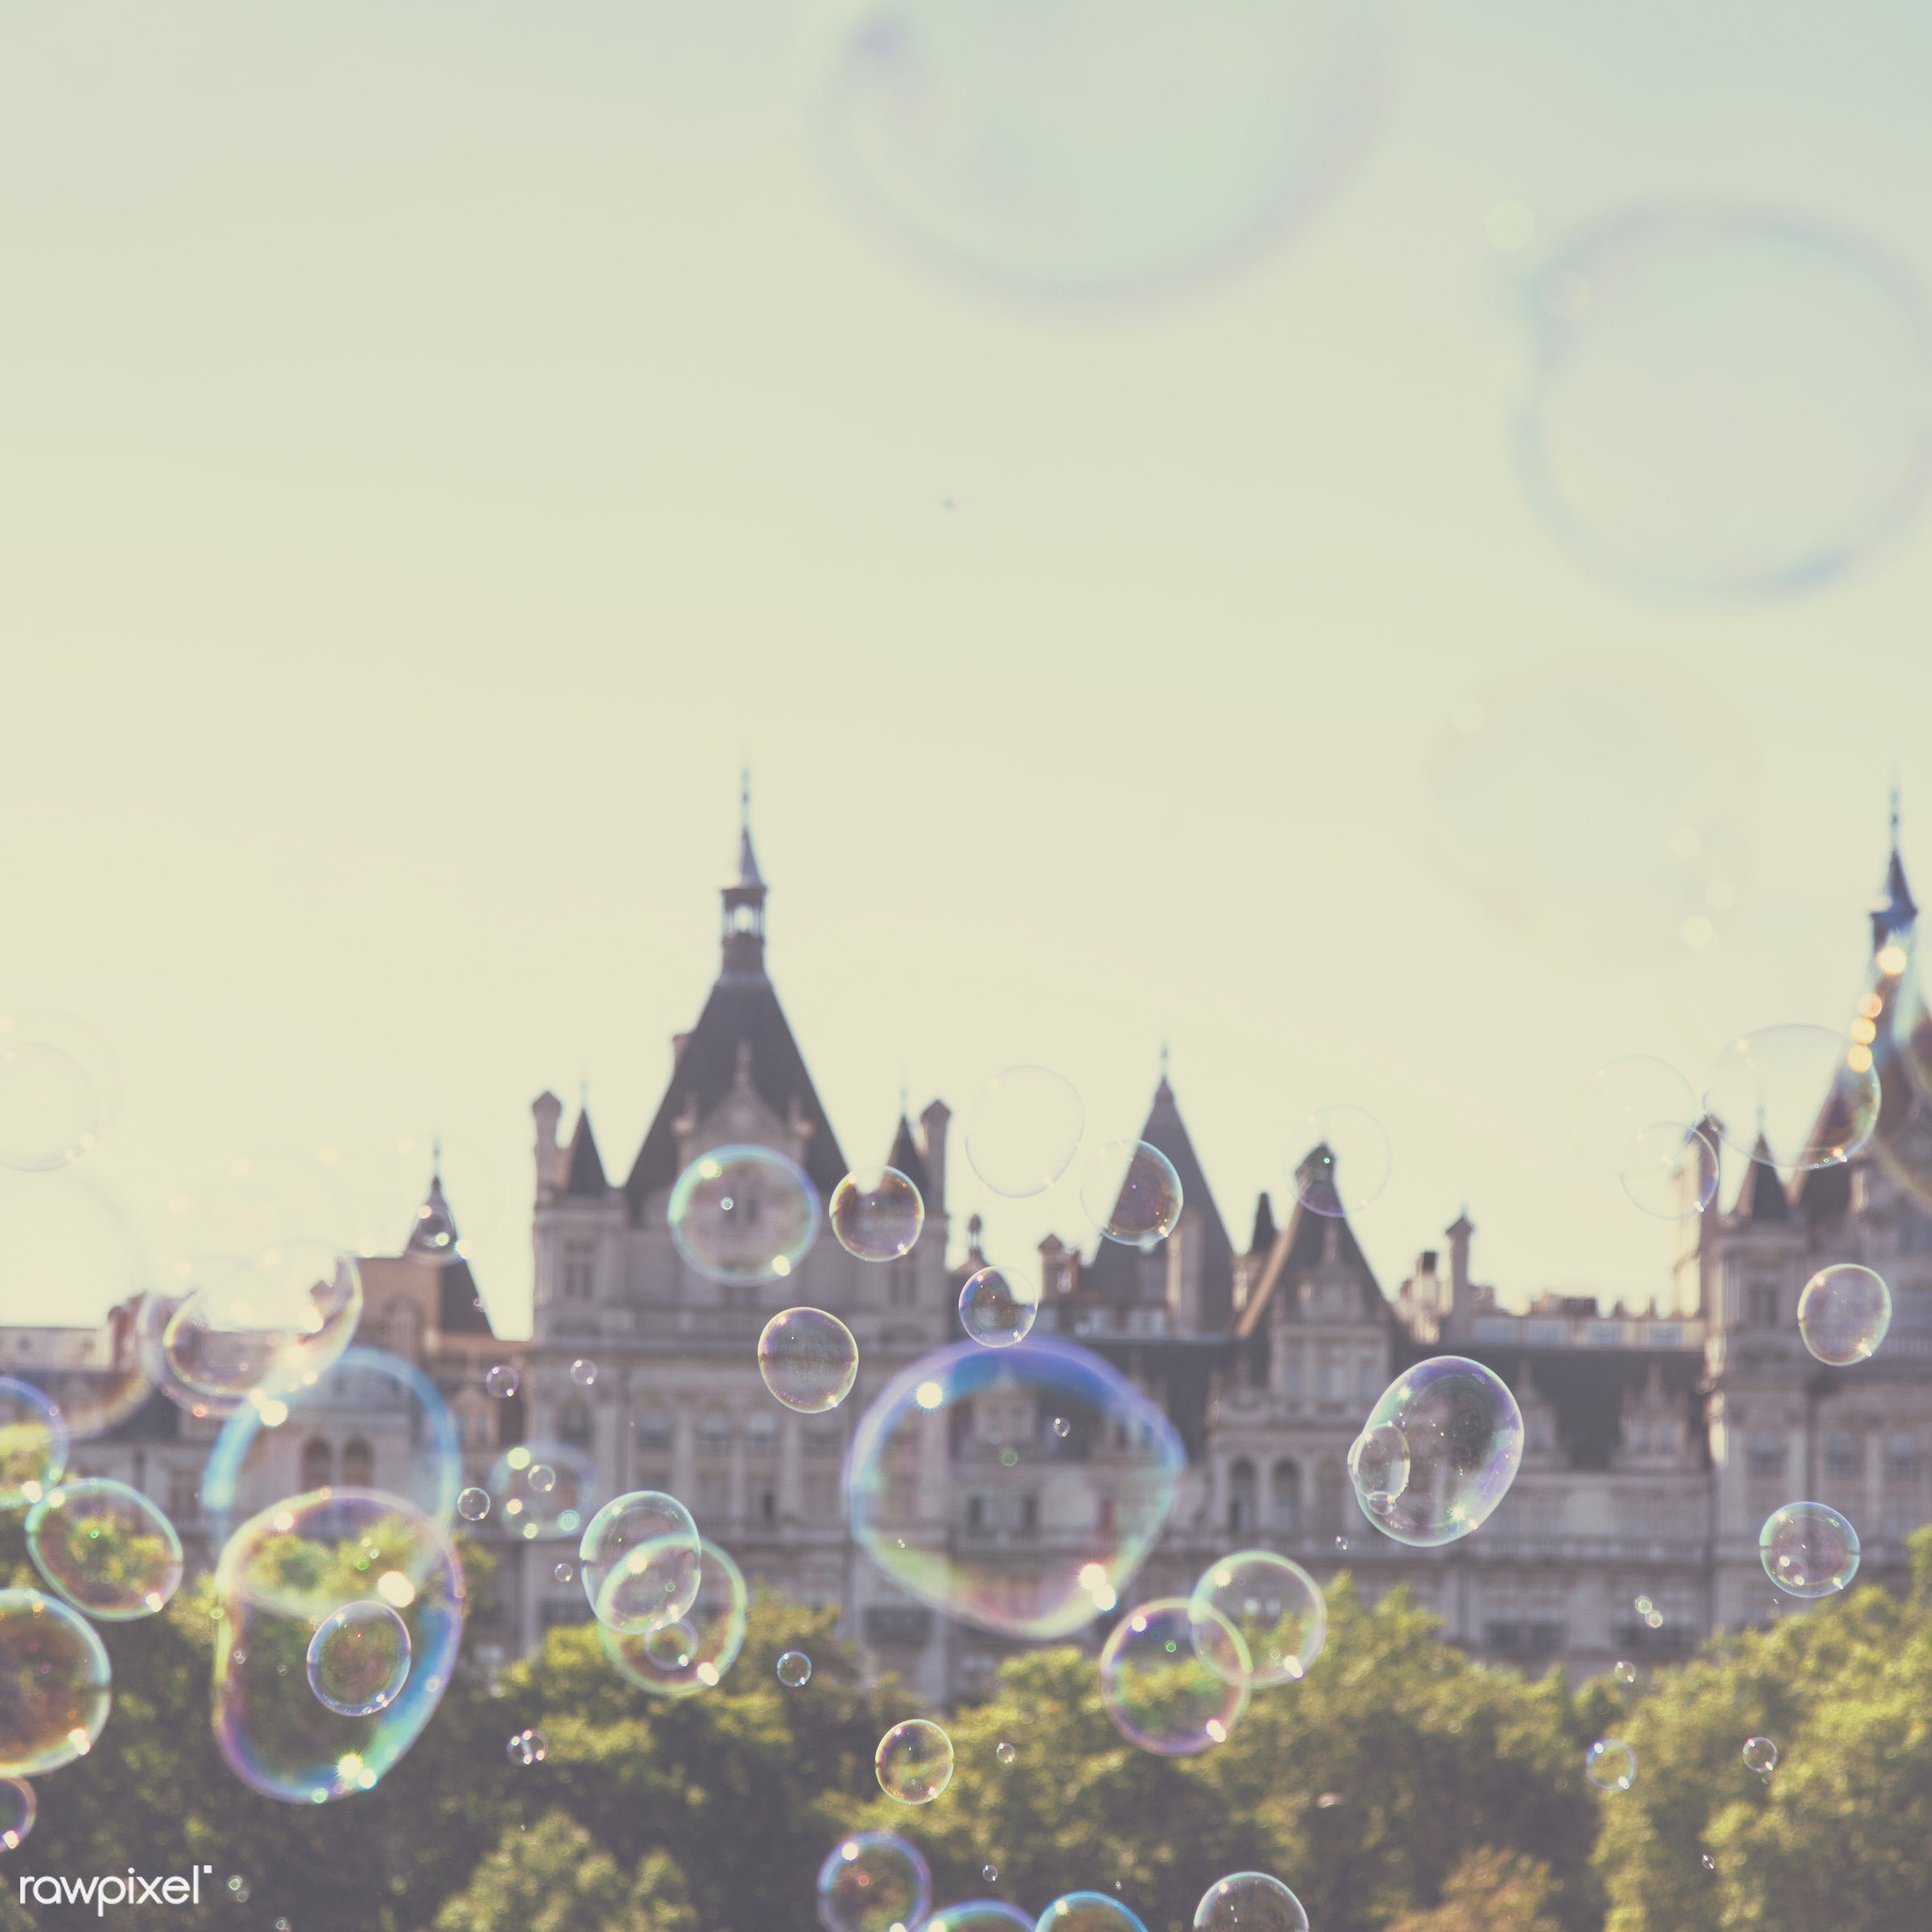 air, architecture, background, ball, blowing, building, circle, city, colorful, day, england, europe, european, fantasy,...